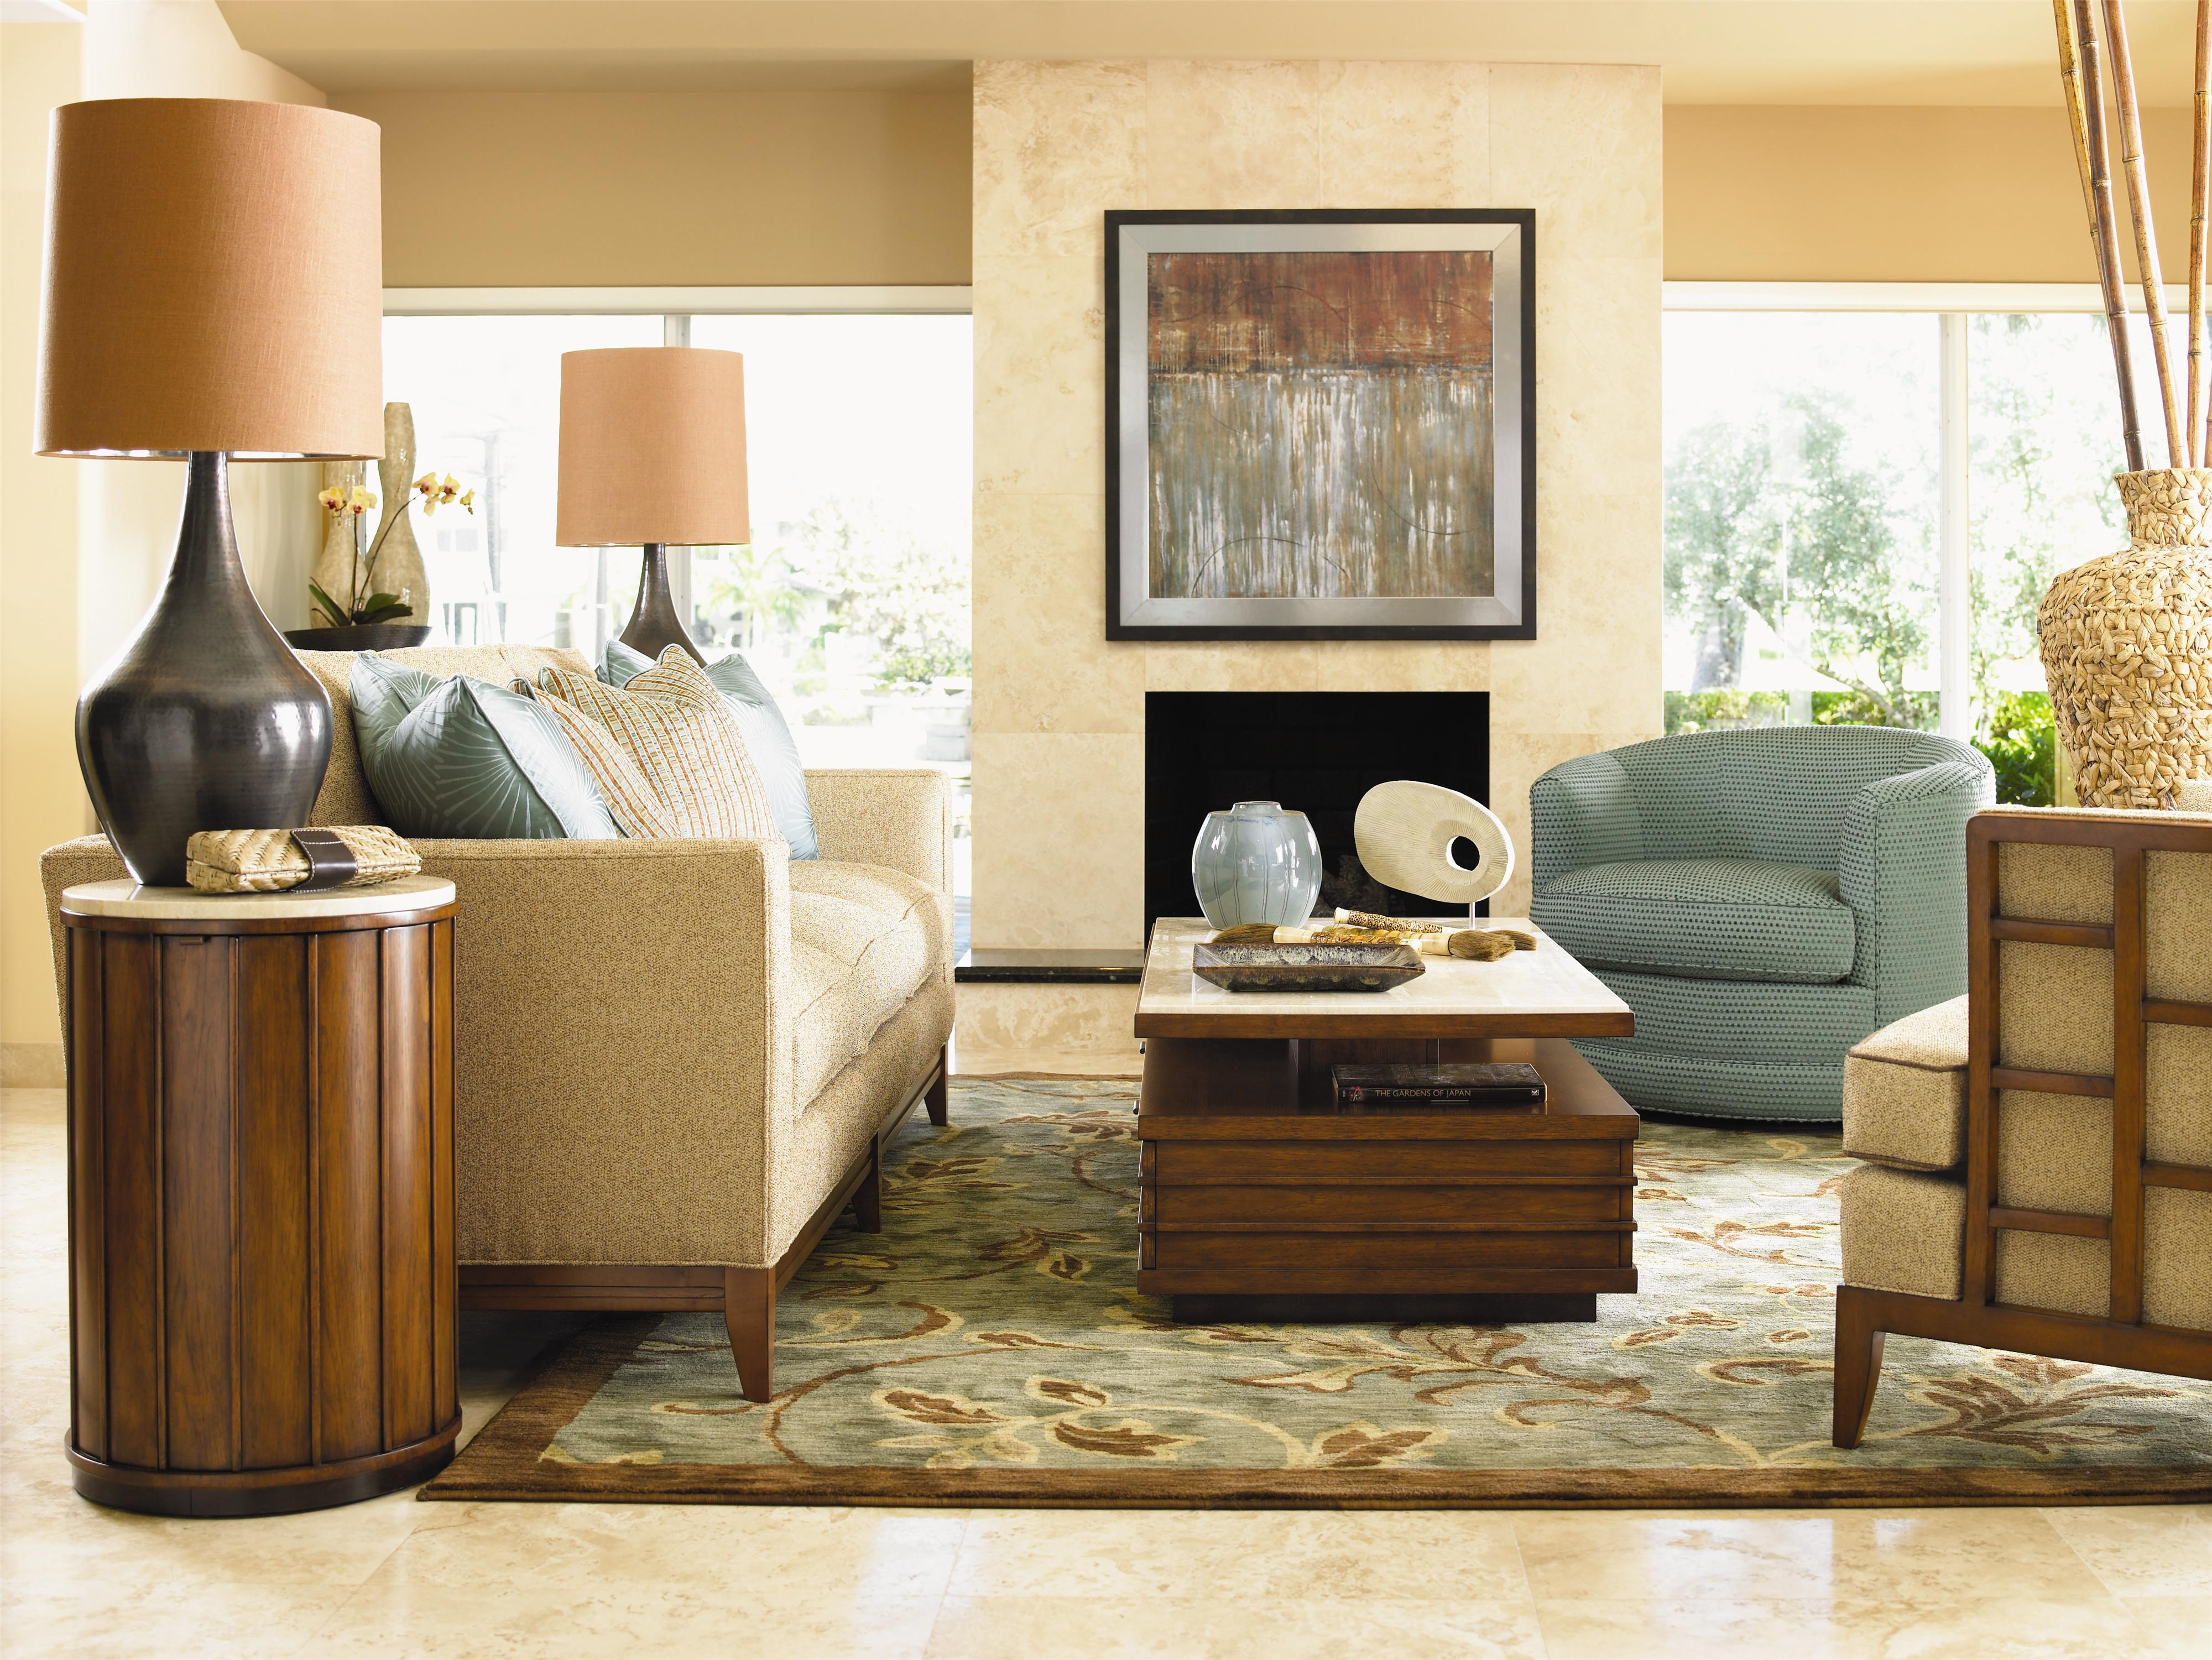 Tommy Bahama Home Ocean Club 7302 33 Ladera Sofa With Exposed Wood Base Legs Becker